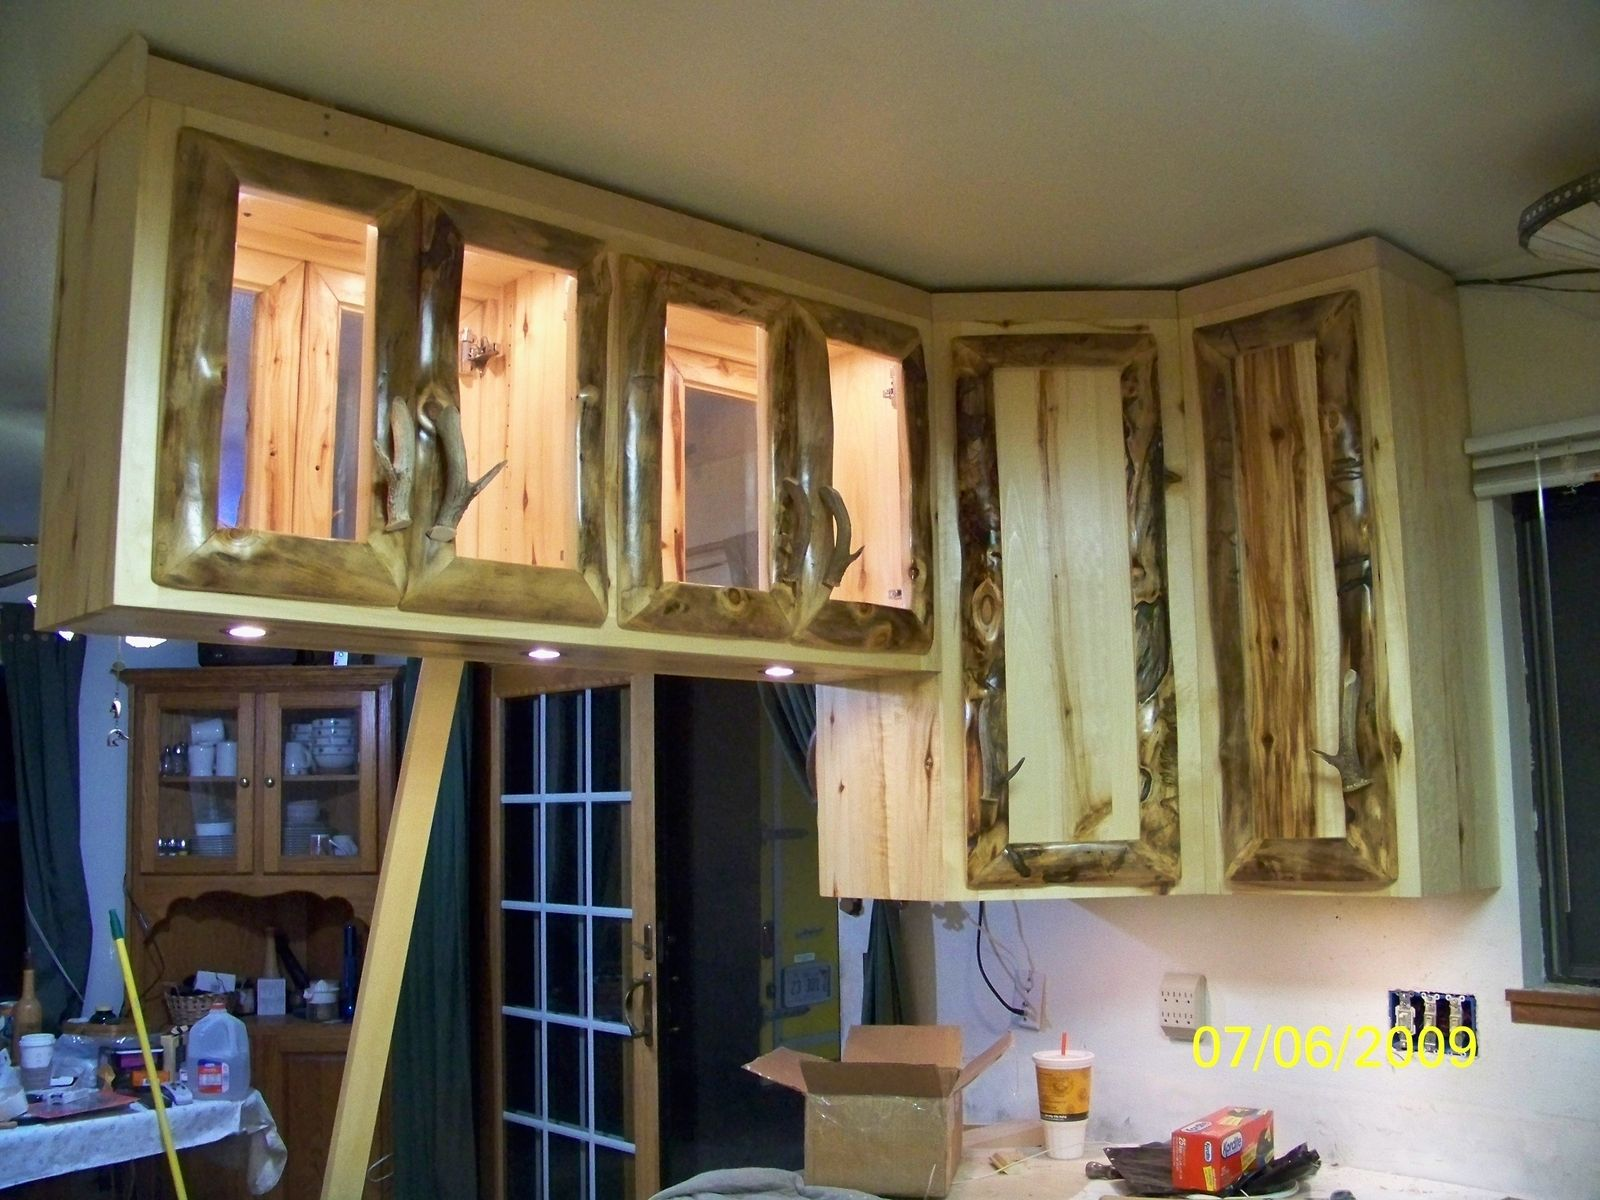 Custom Made Kitchen Cabinets hand made rustic aspen log kitchen cabinets and built in wall